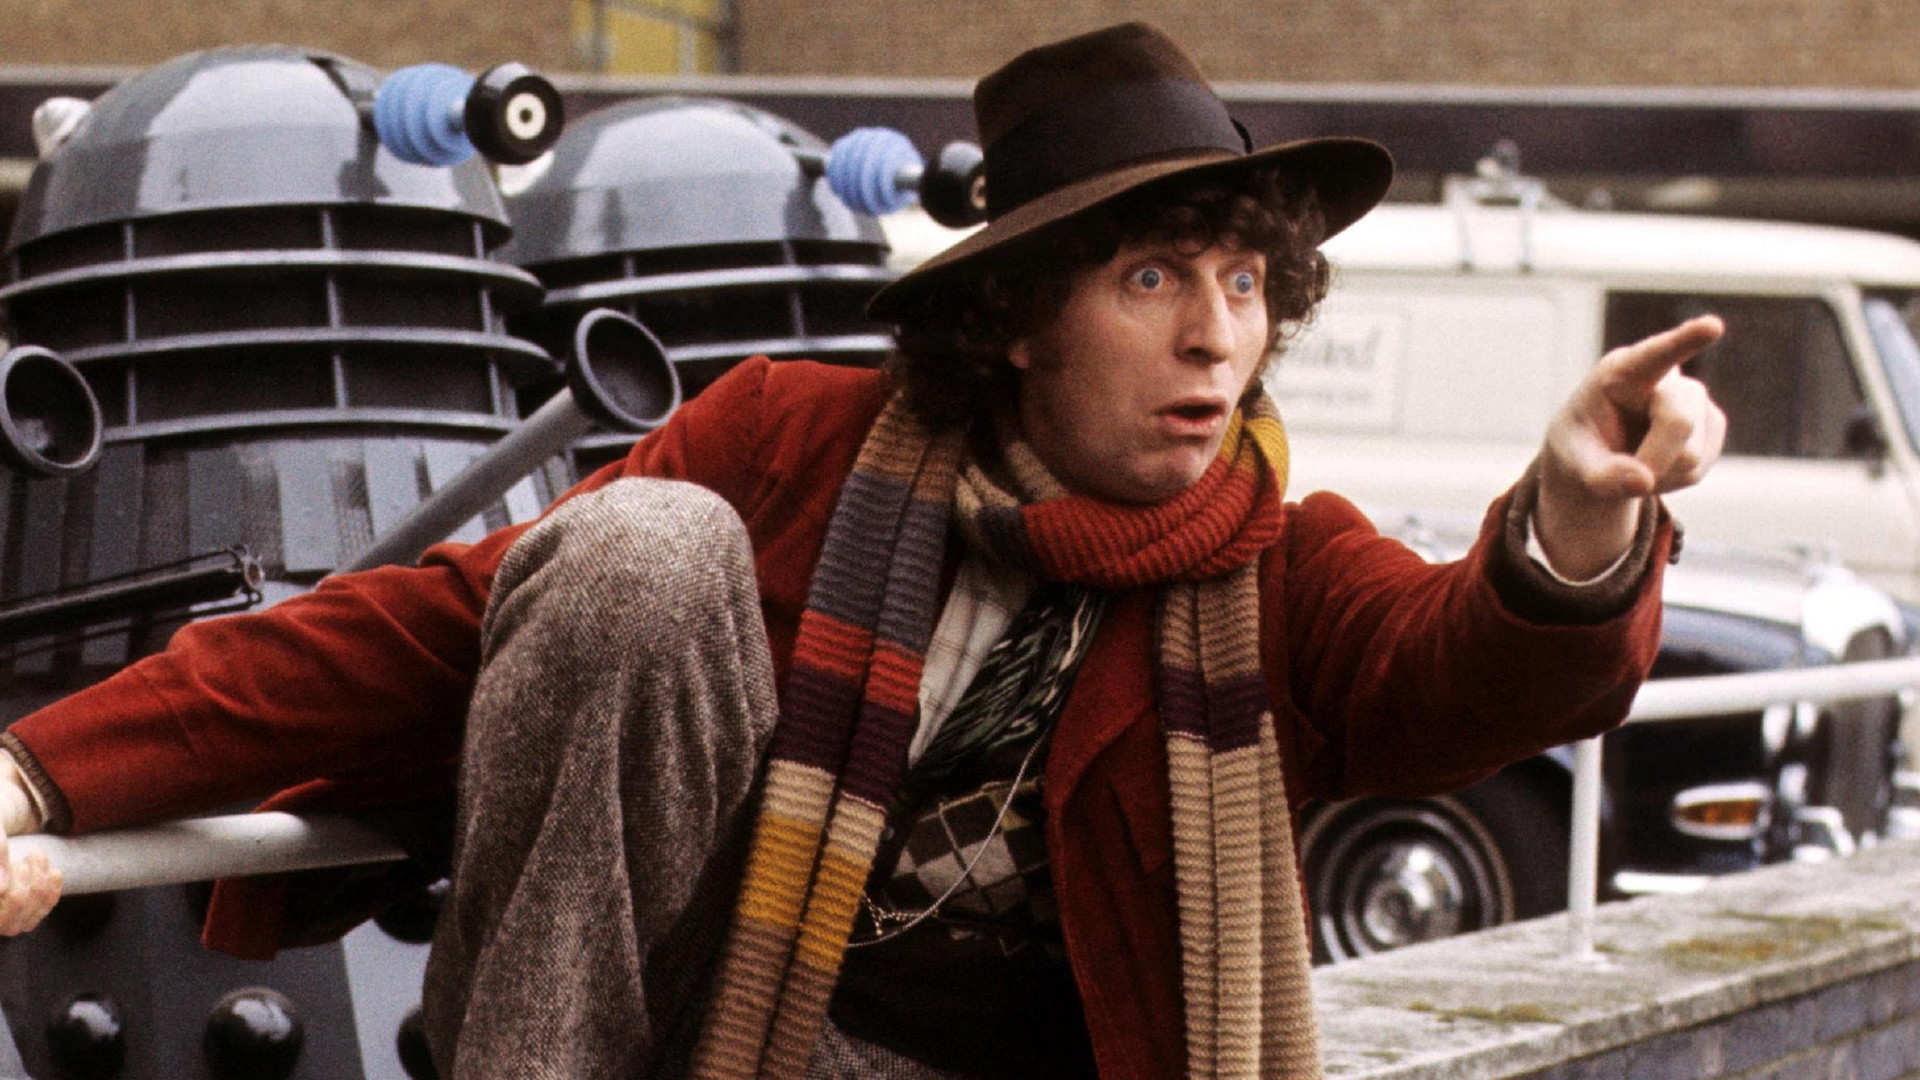 http://onlyhdwallpapers.com/wallpaper/dalek_fourth_doctor_tom_baker_who_desktop_1920x1080_hd-wallpaper-1198786.jpg